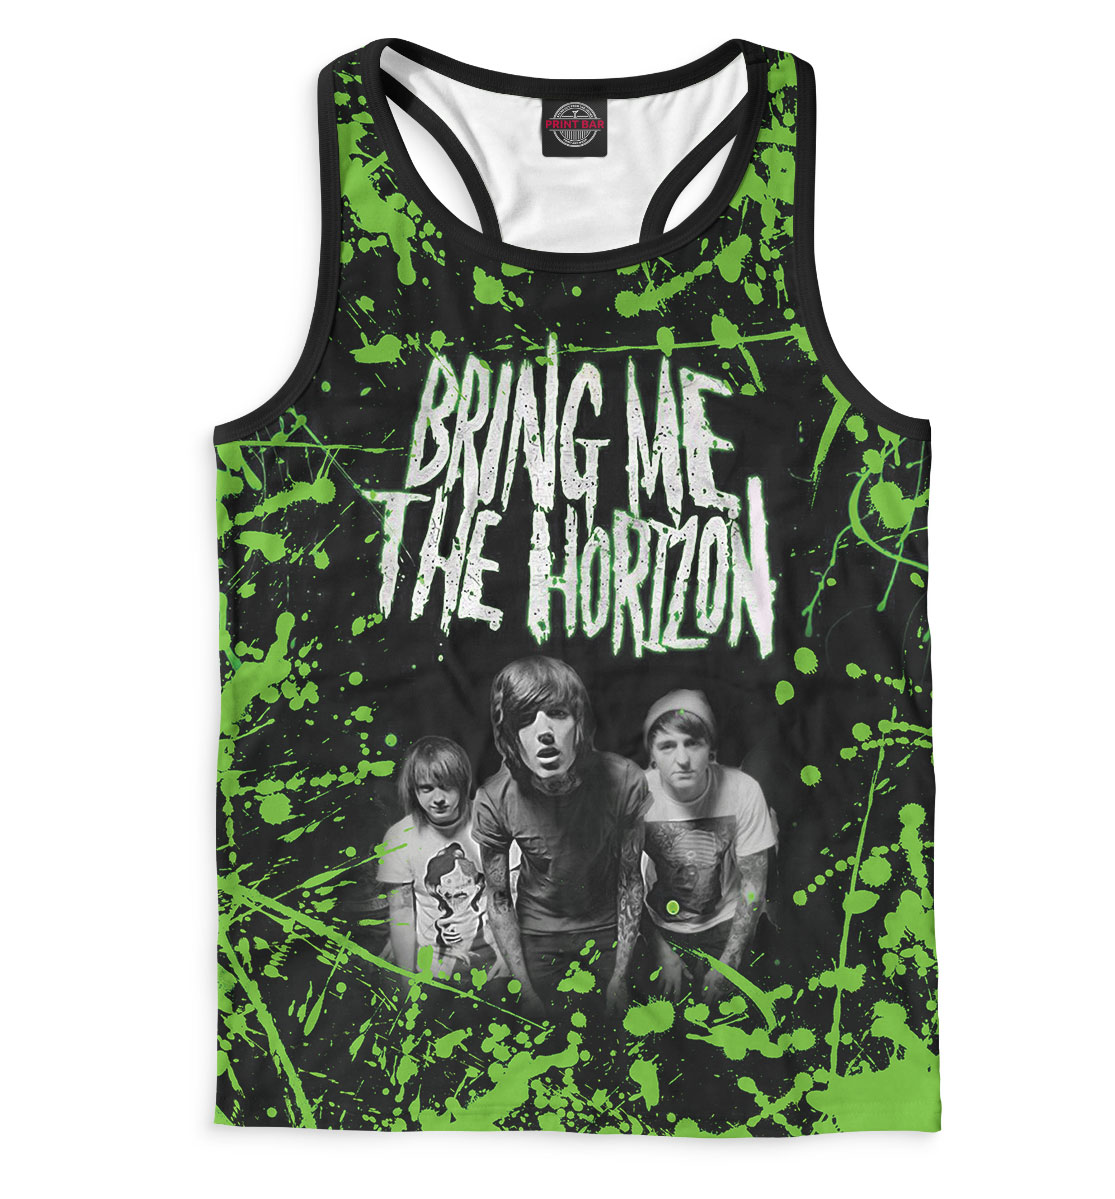 Купить Bring Me the Horizon, Printbar, Майки борцовки, RCK-134983-mayb-2